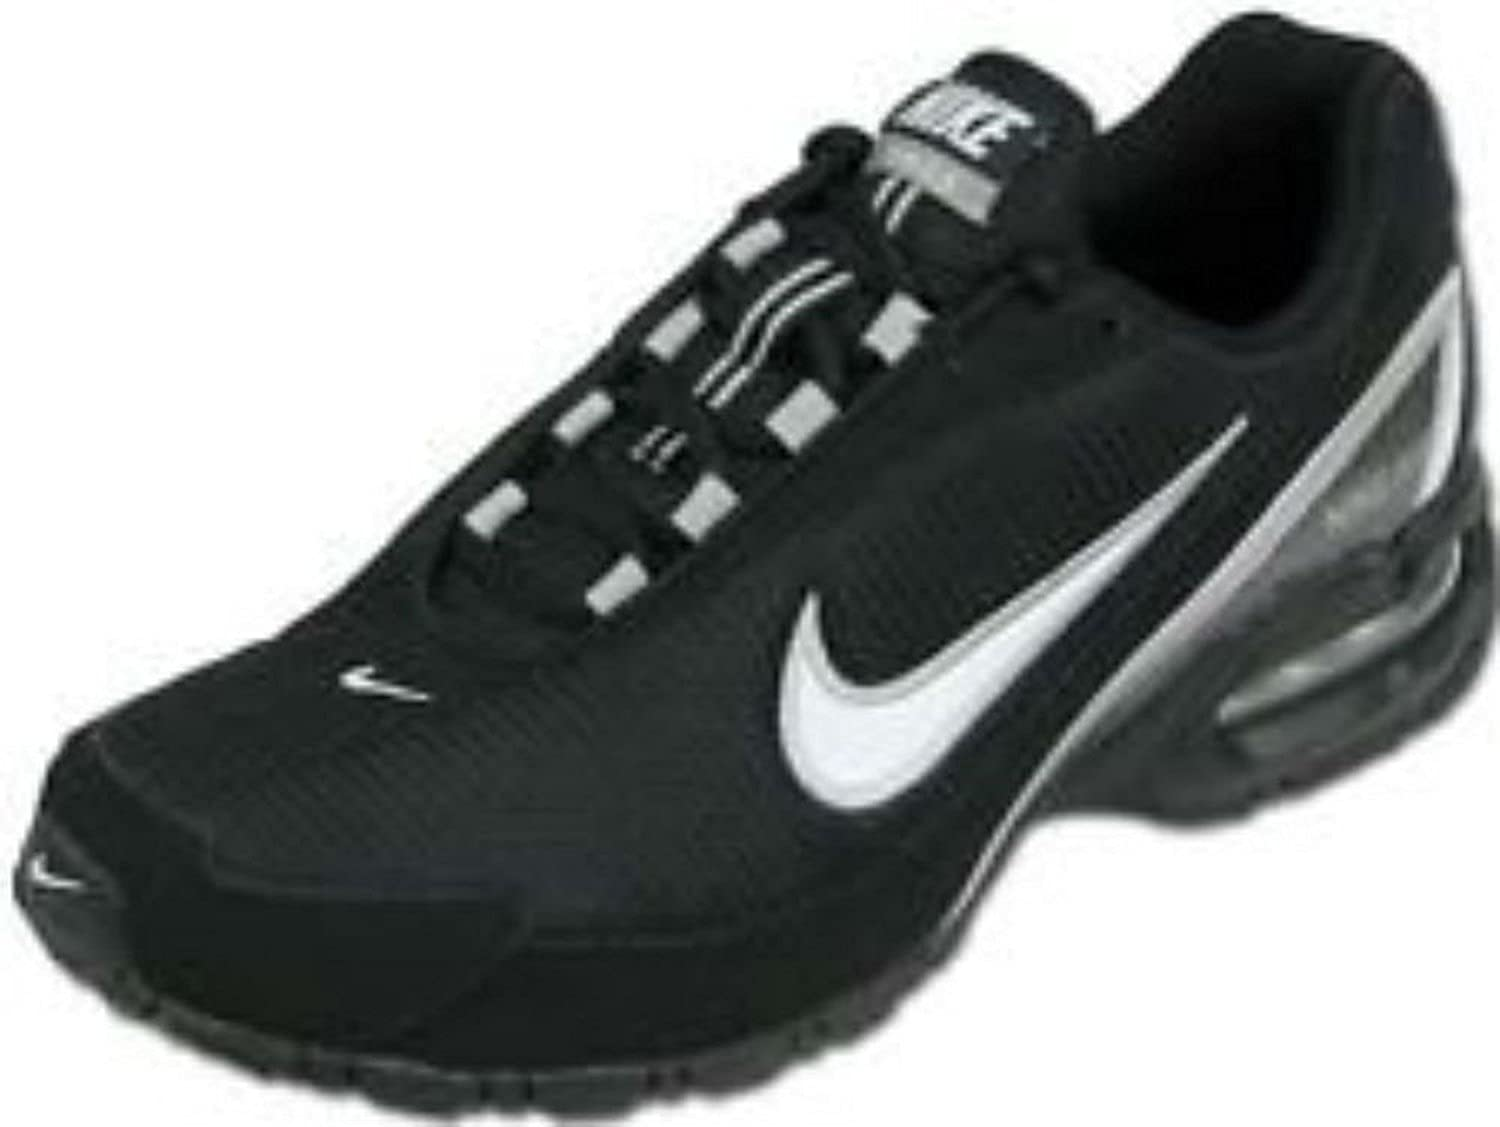 d5407740ccccb7 Nike Air Max Torch 3 Men s Running Shoes Black White (6. 5 D(M) US)  Buy  Online at Low Prices in India - Amazon.in